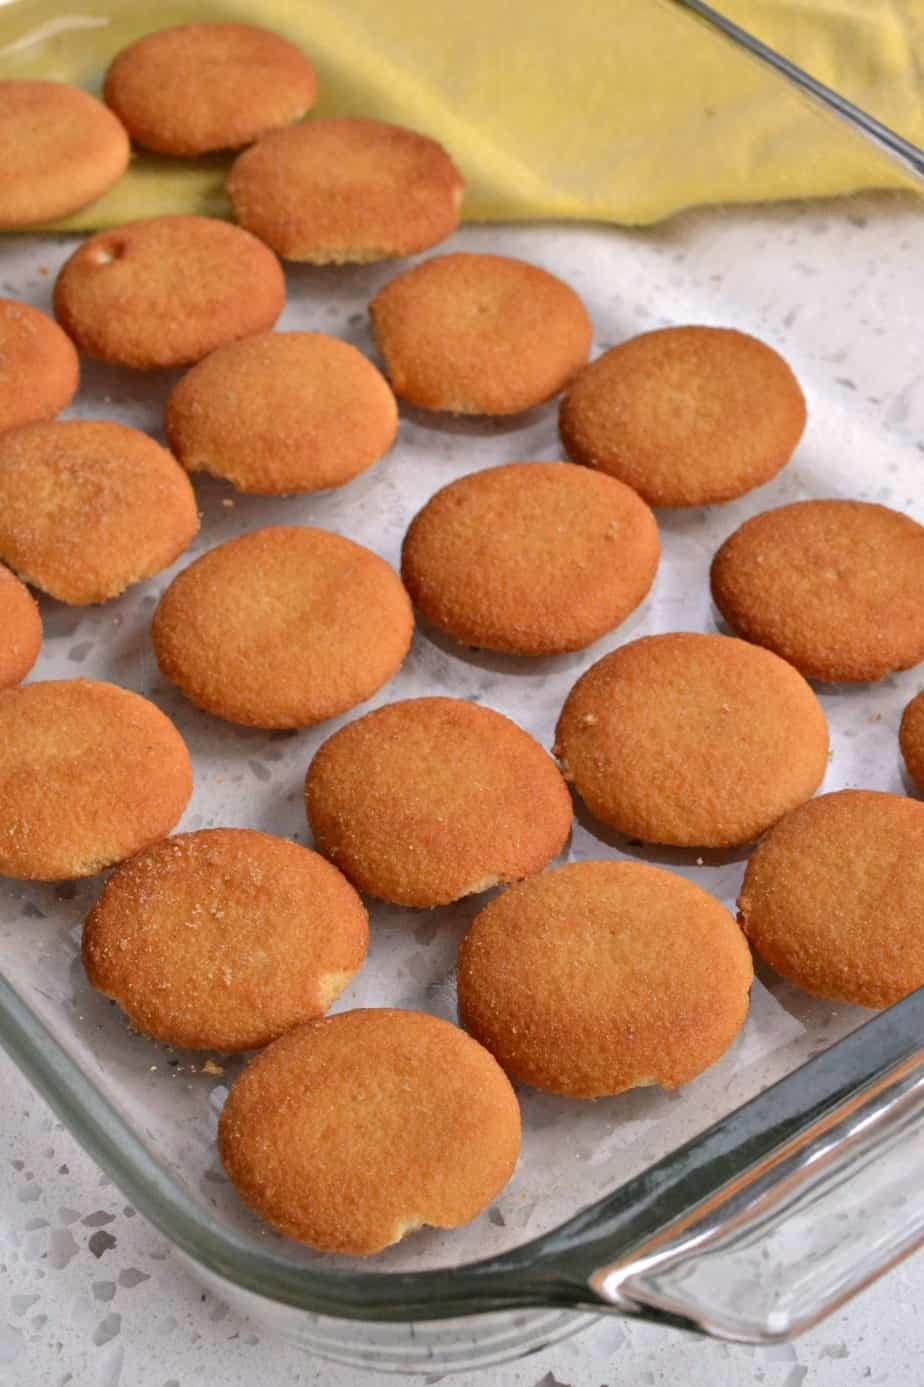 Start this homemade banana pudding recipe by lining a baking dish with a layer of vanilla wafer cookies